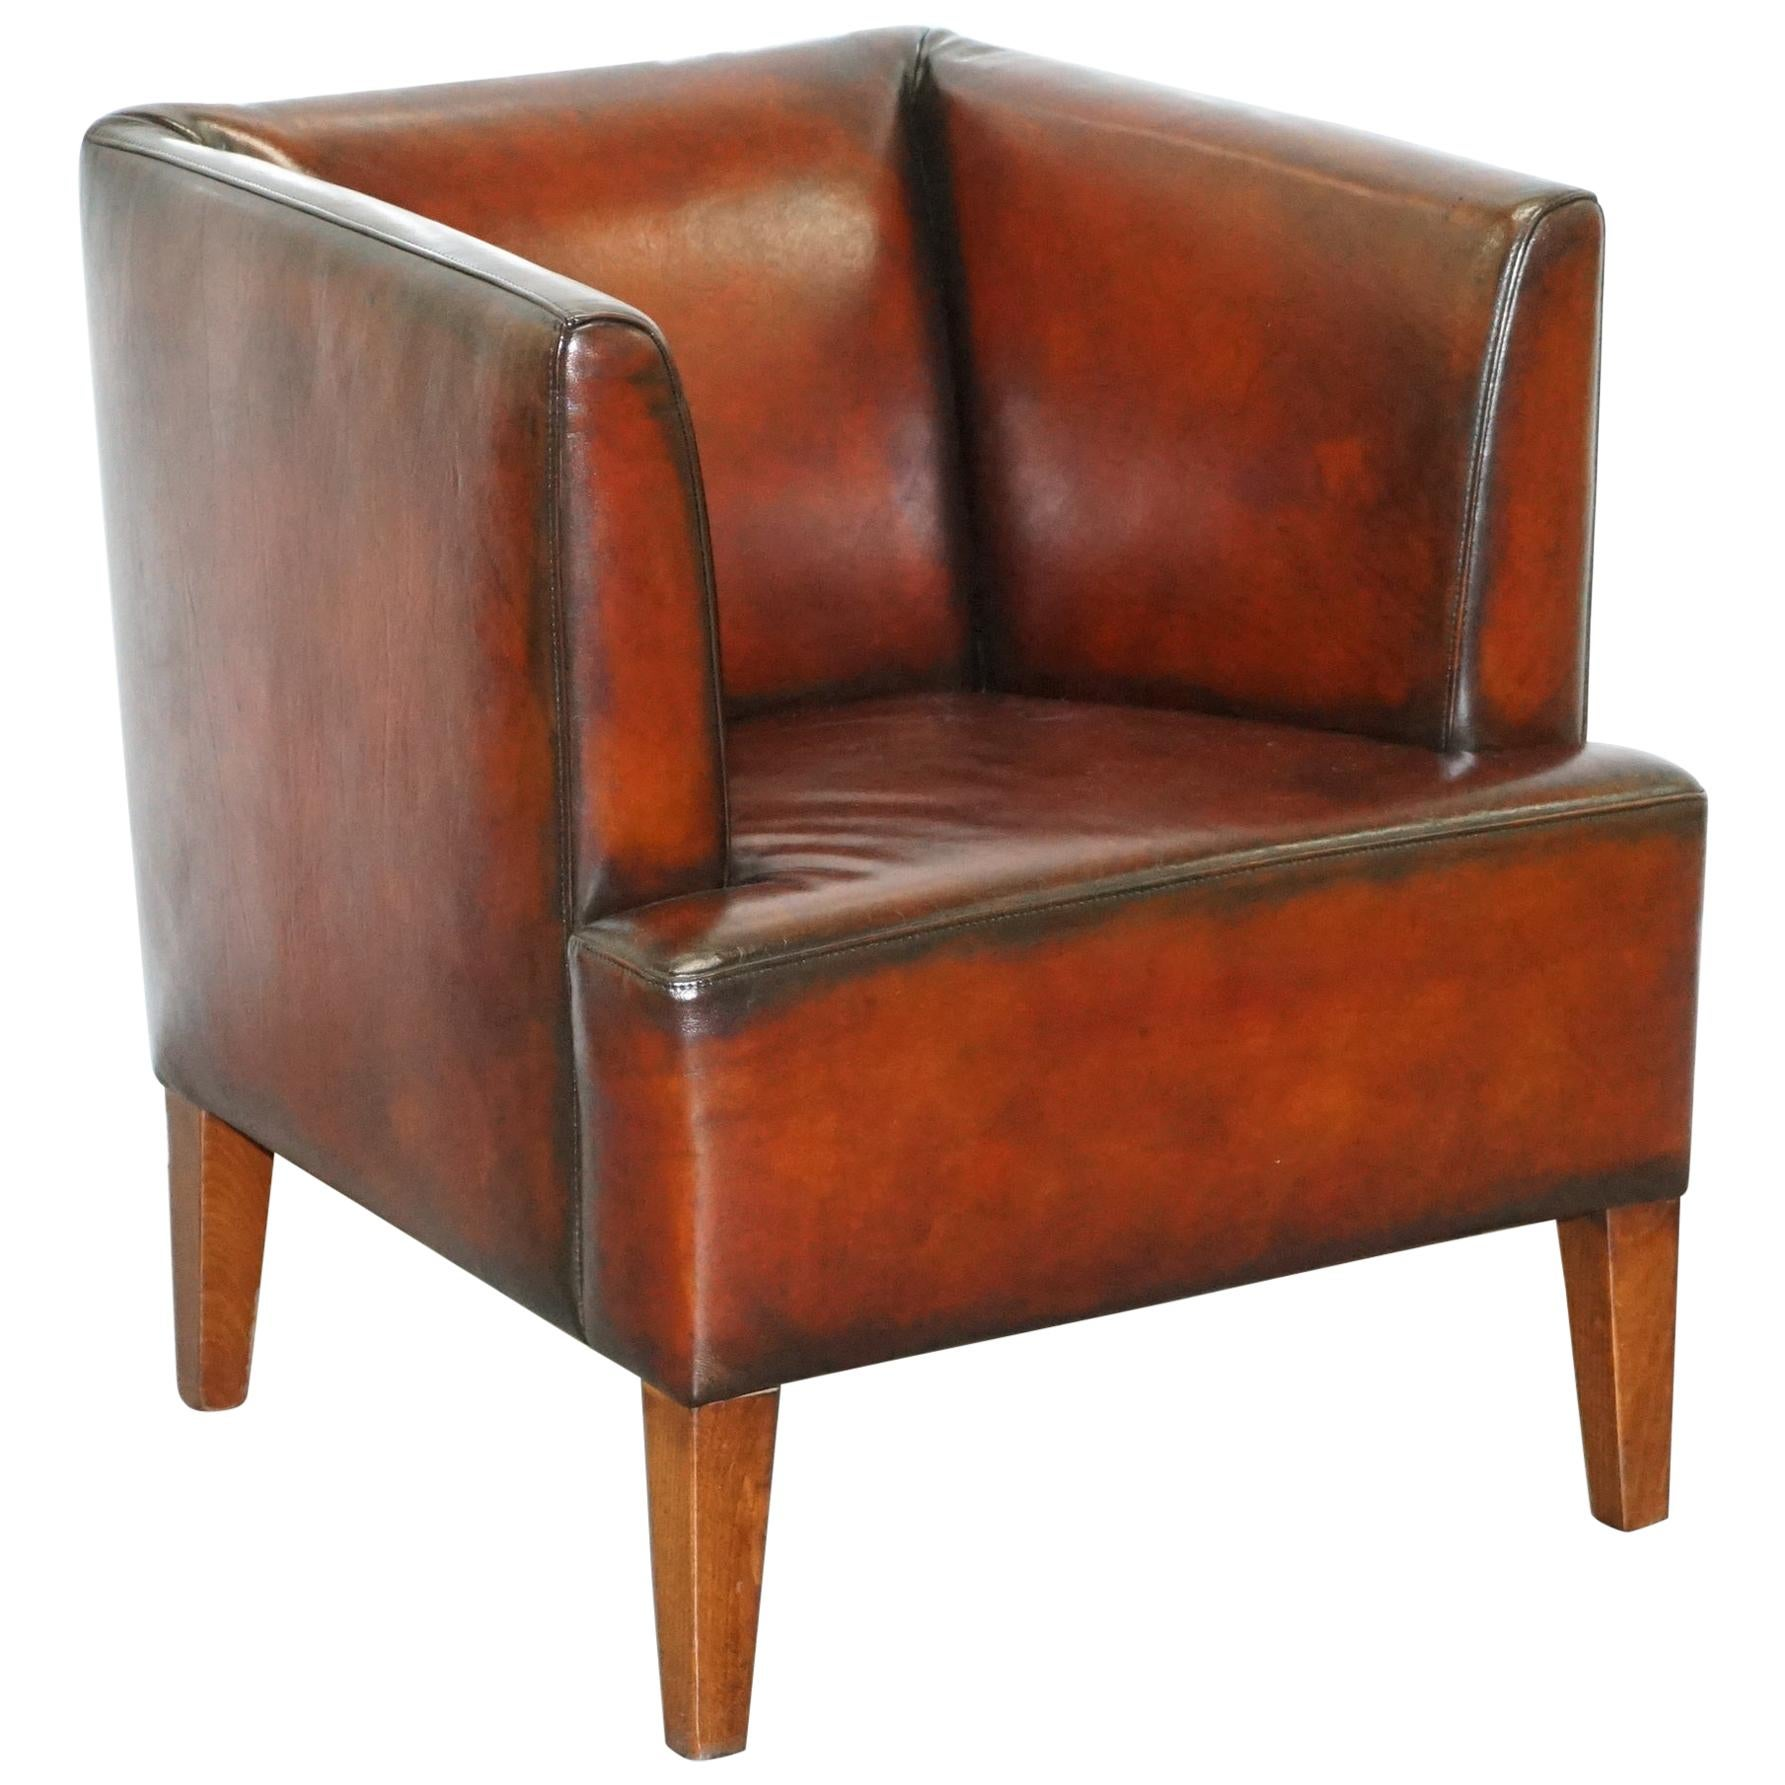 Stunning Full Restored Aged Brown Leather Hand Dyed Contemporary Armchair